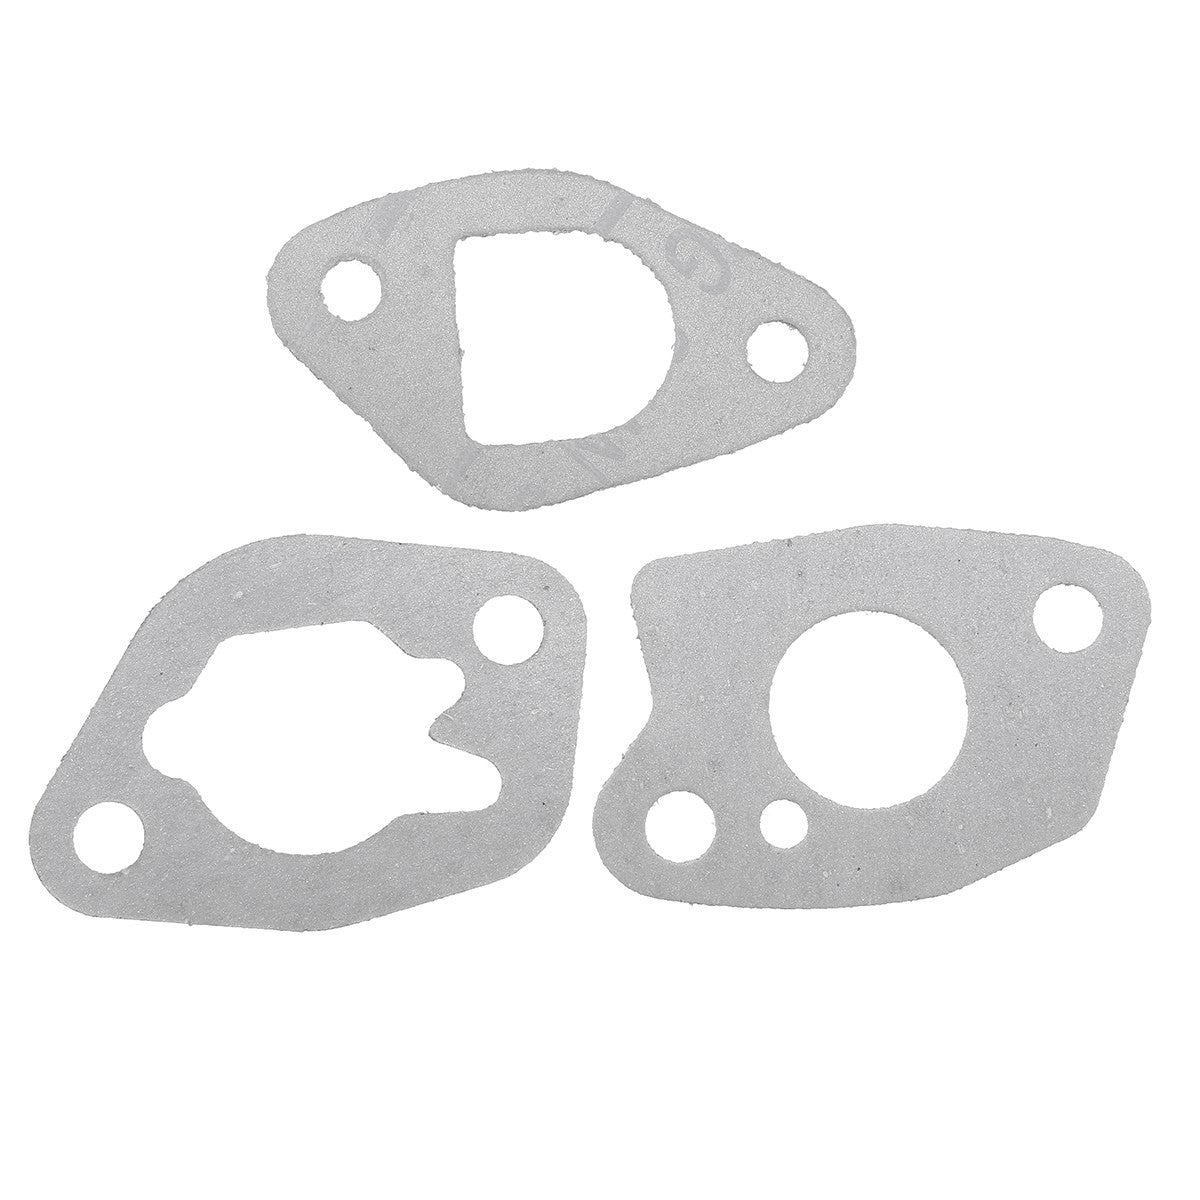 3 Pcs Carburettor Car Gaskets For Subaru/Robin EX17 277-62301-30